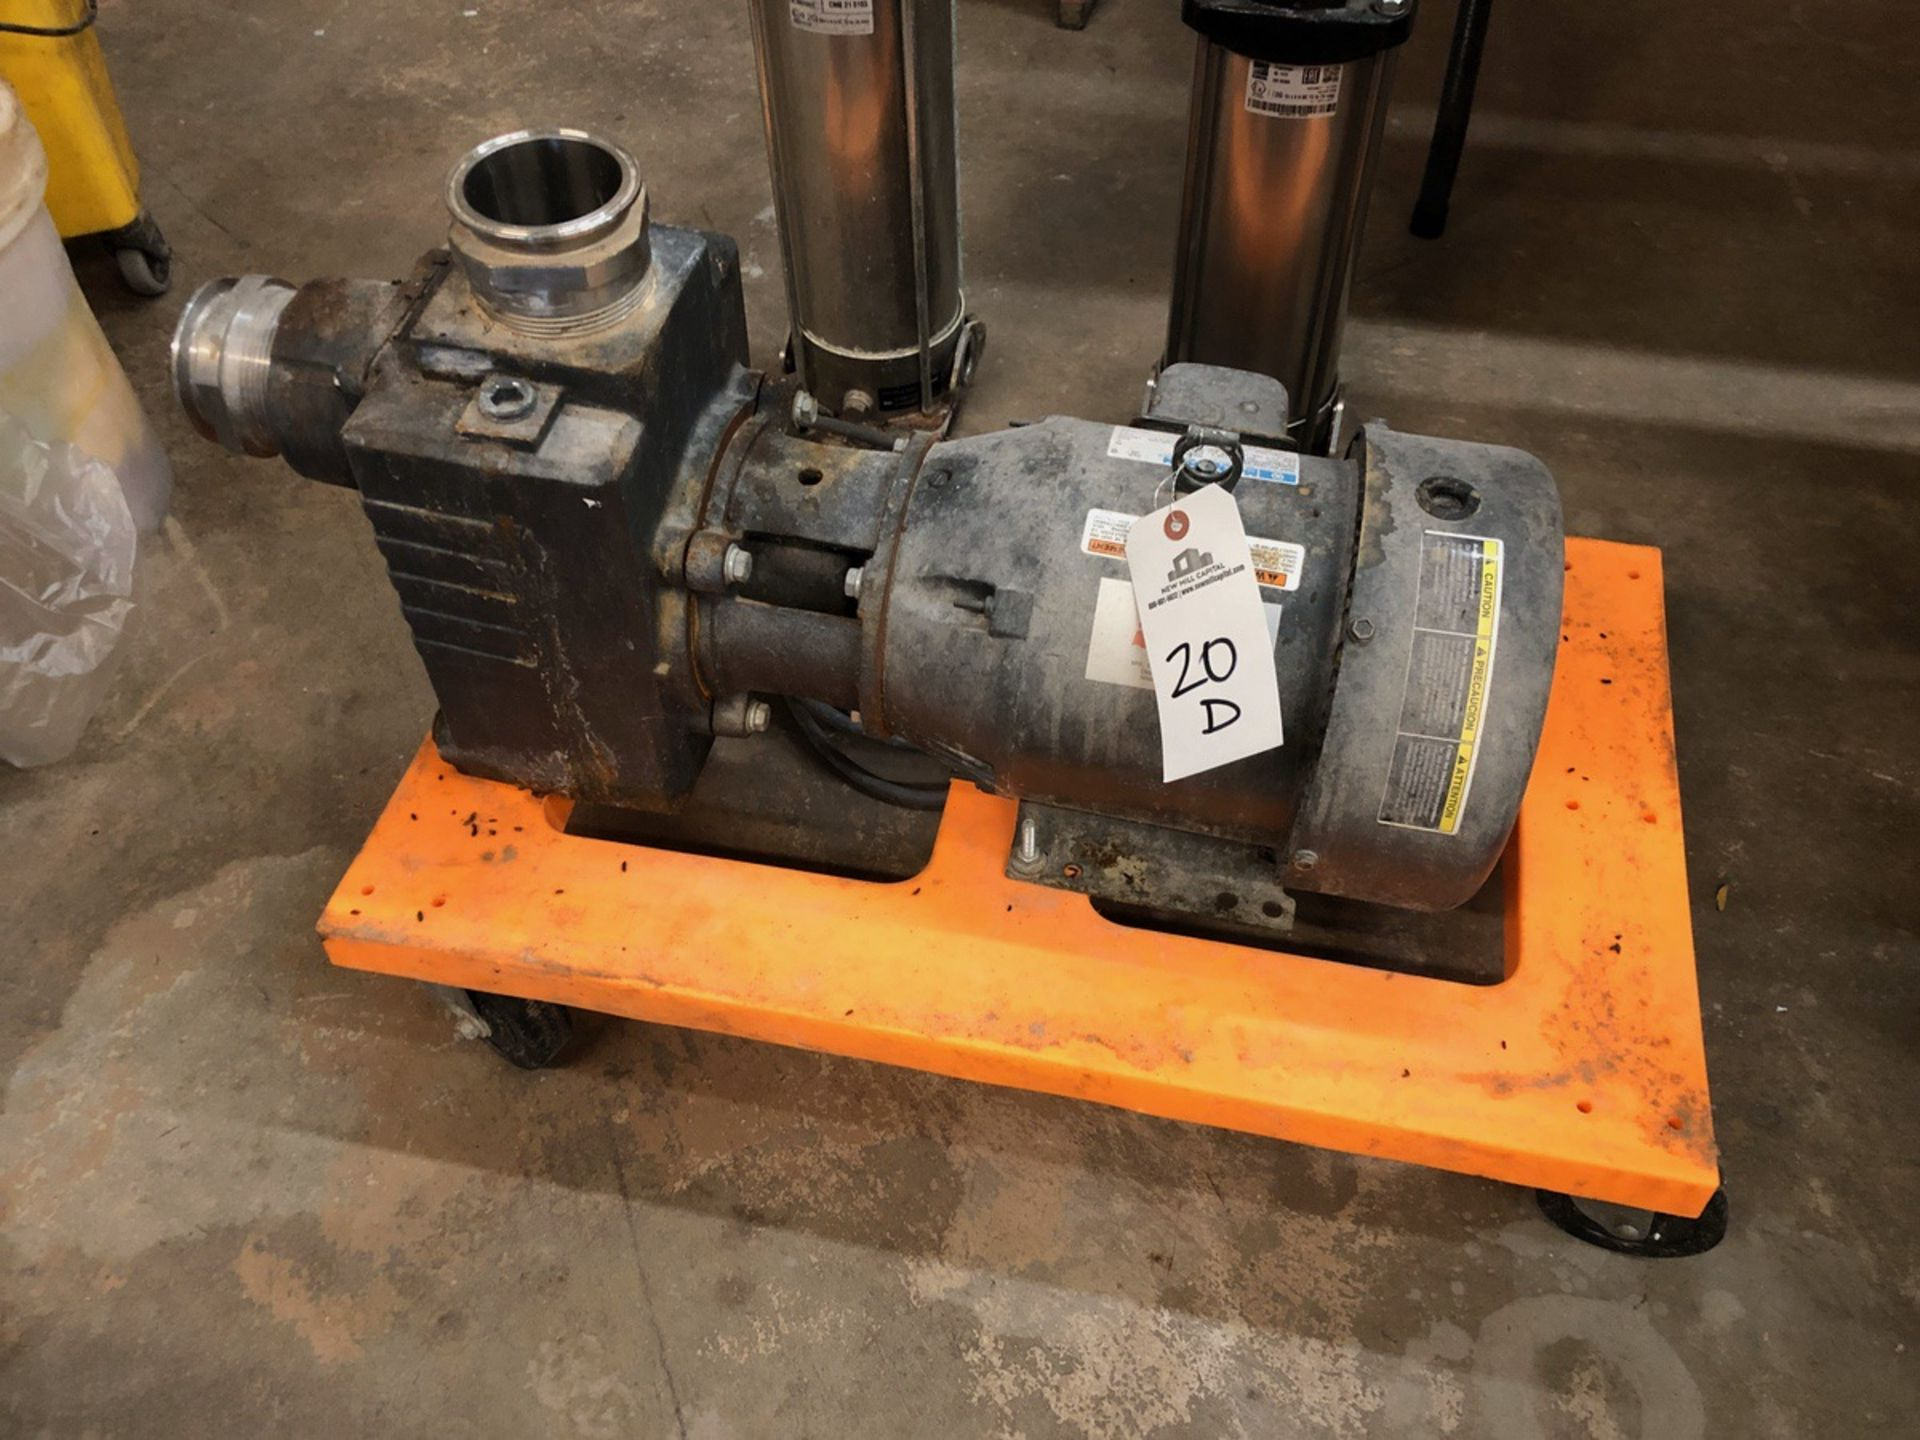 Lot 20D - Teel 3P705 Self Priming Centrigual Transfer Pump, 2HP | Sub to Bulk | Rig Fee: $75